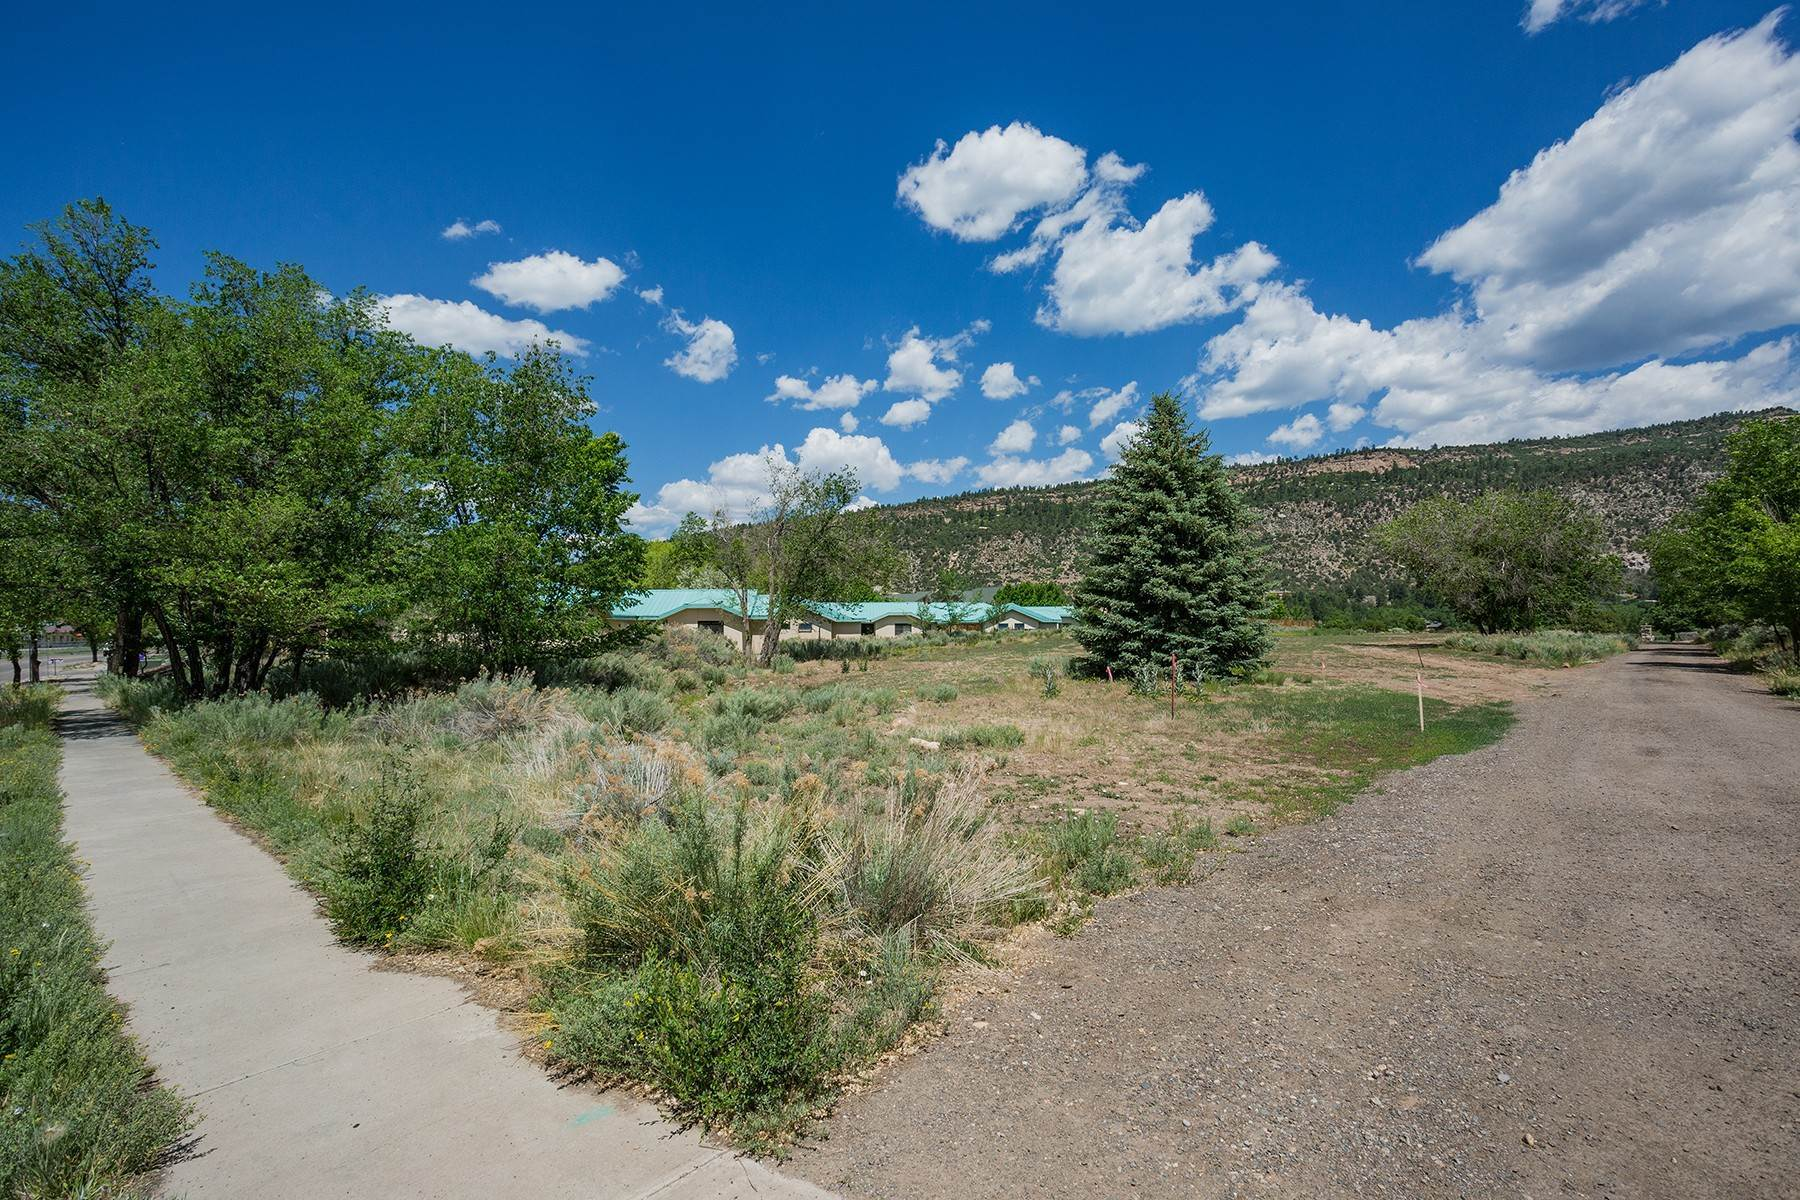 Property for Sale at Lot 2, Homesites at Eight Twenty One Lot 2, 821 E 32nd Street Durango, Colorado 81301 United States